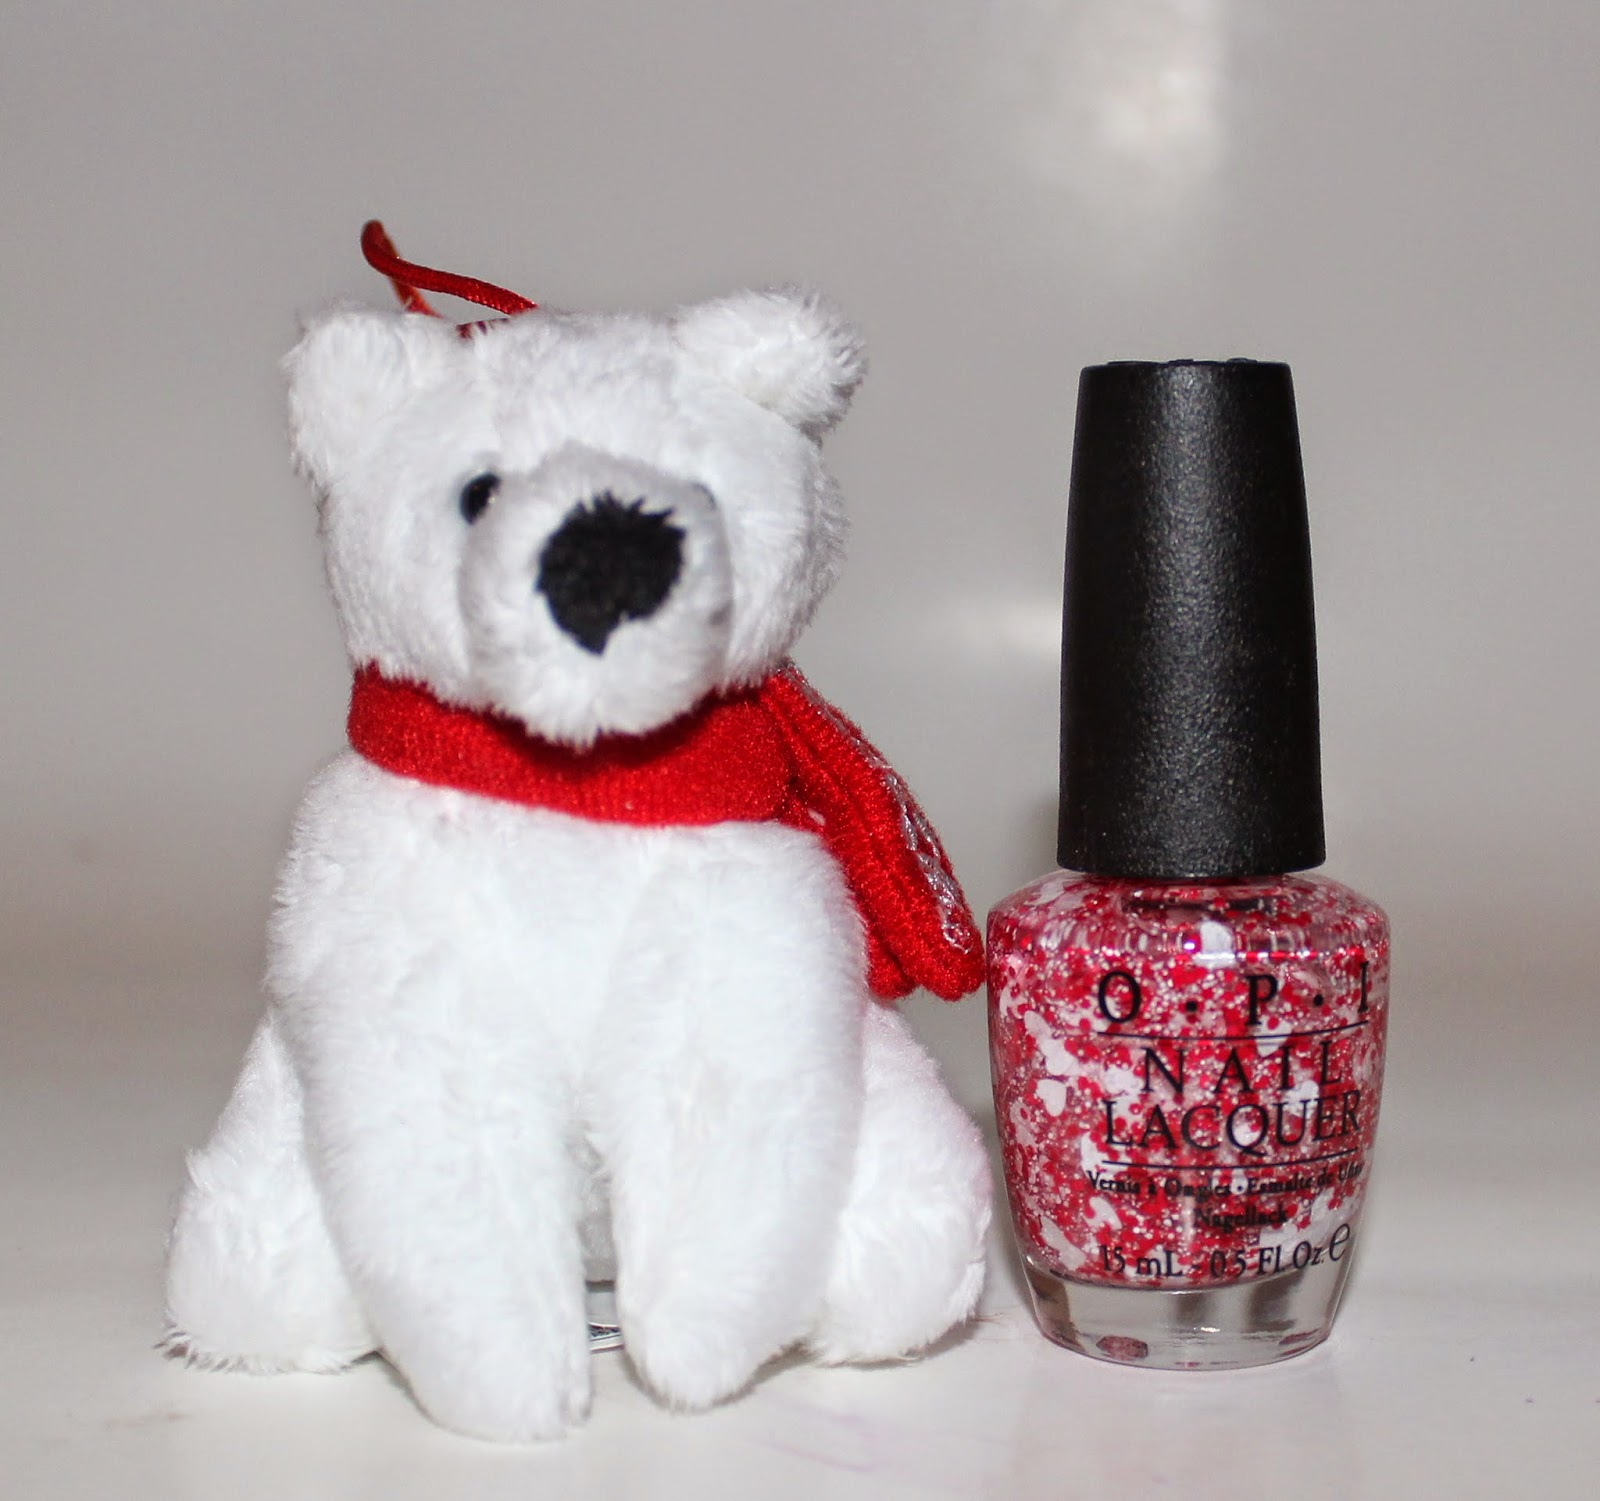 OPI This Bear's Got Flair!